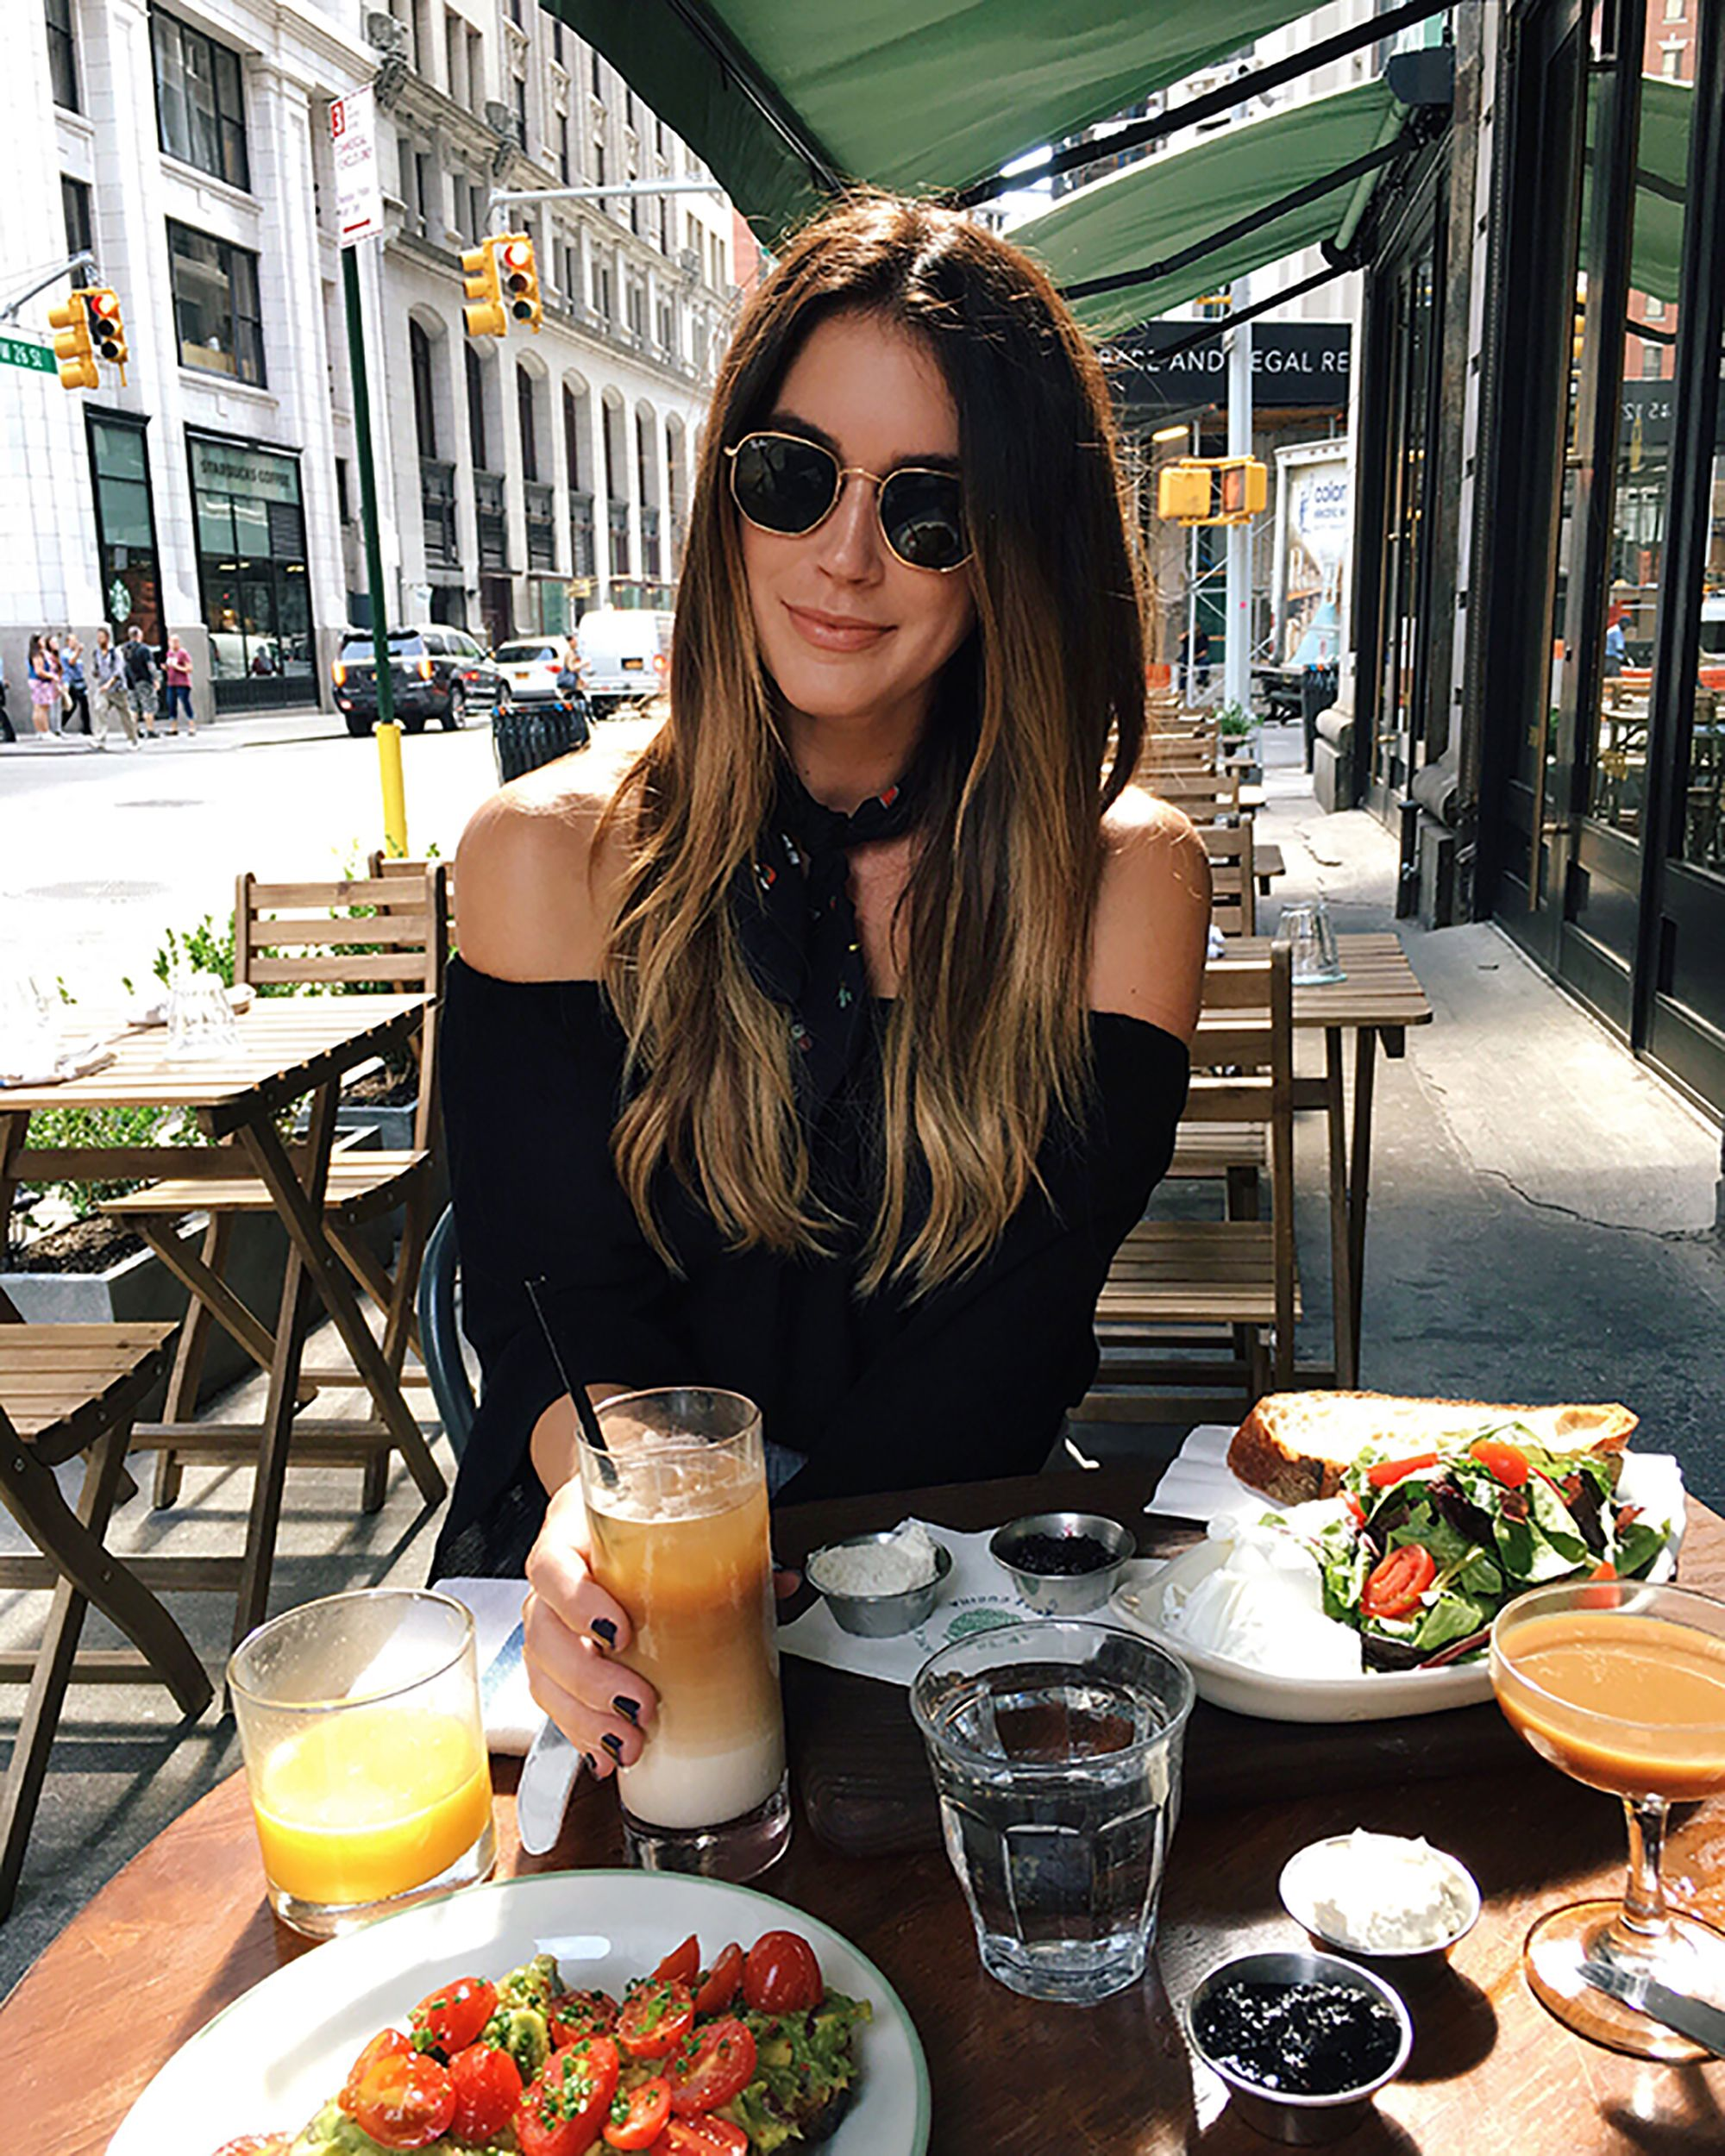 I'm always overwhelmed with food options. My 5 favorite places to eat in New York have great vibes and the food is hands down delish!